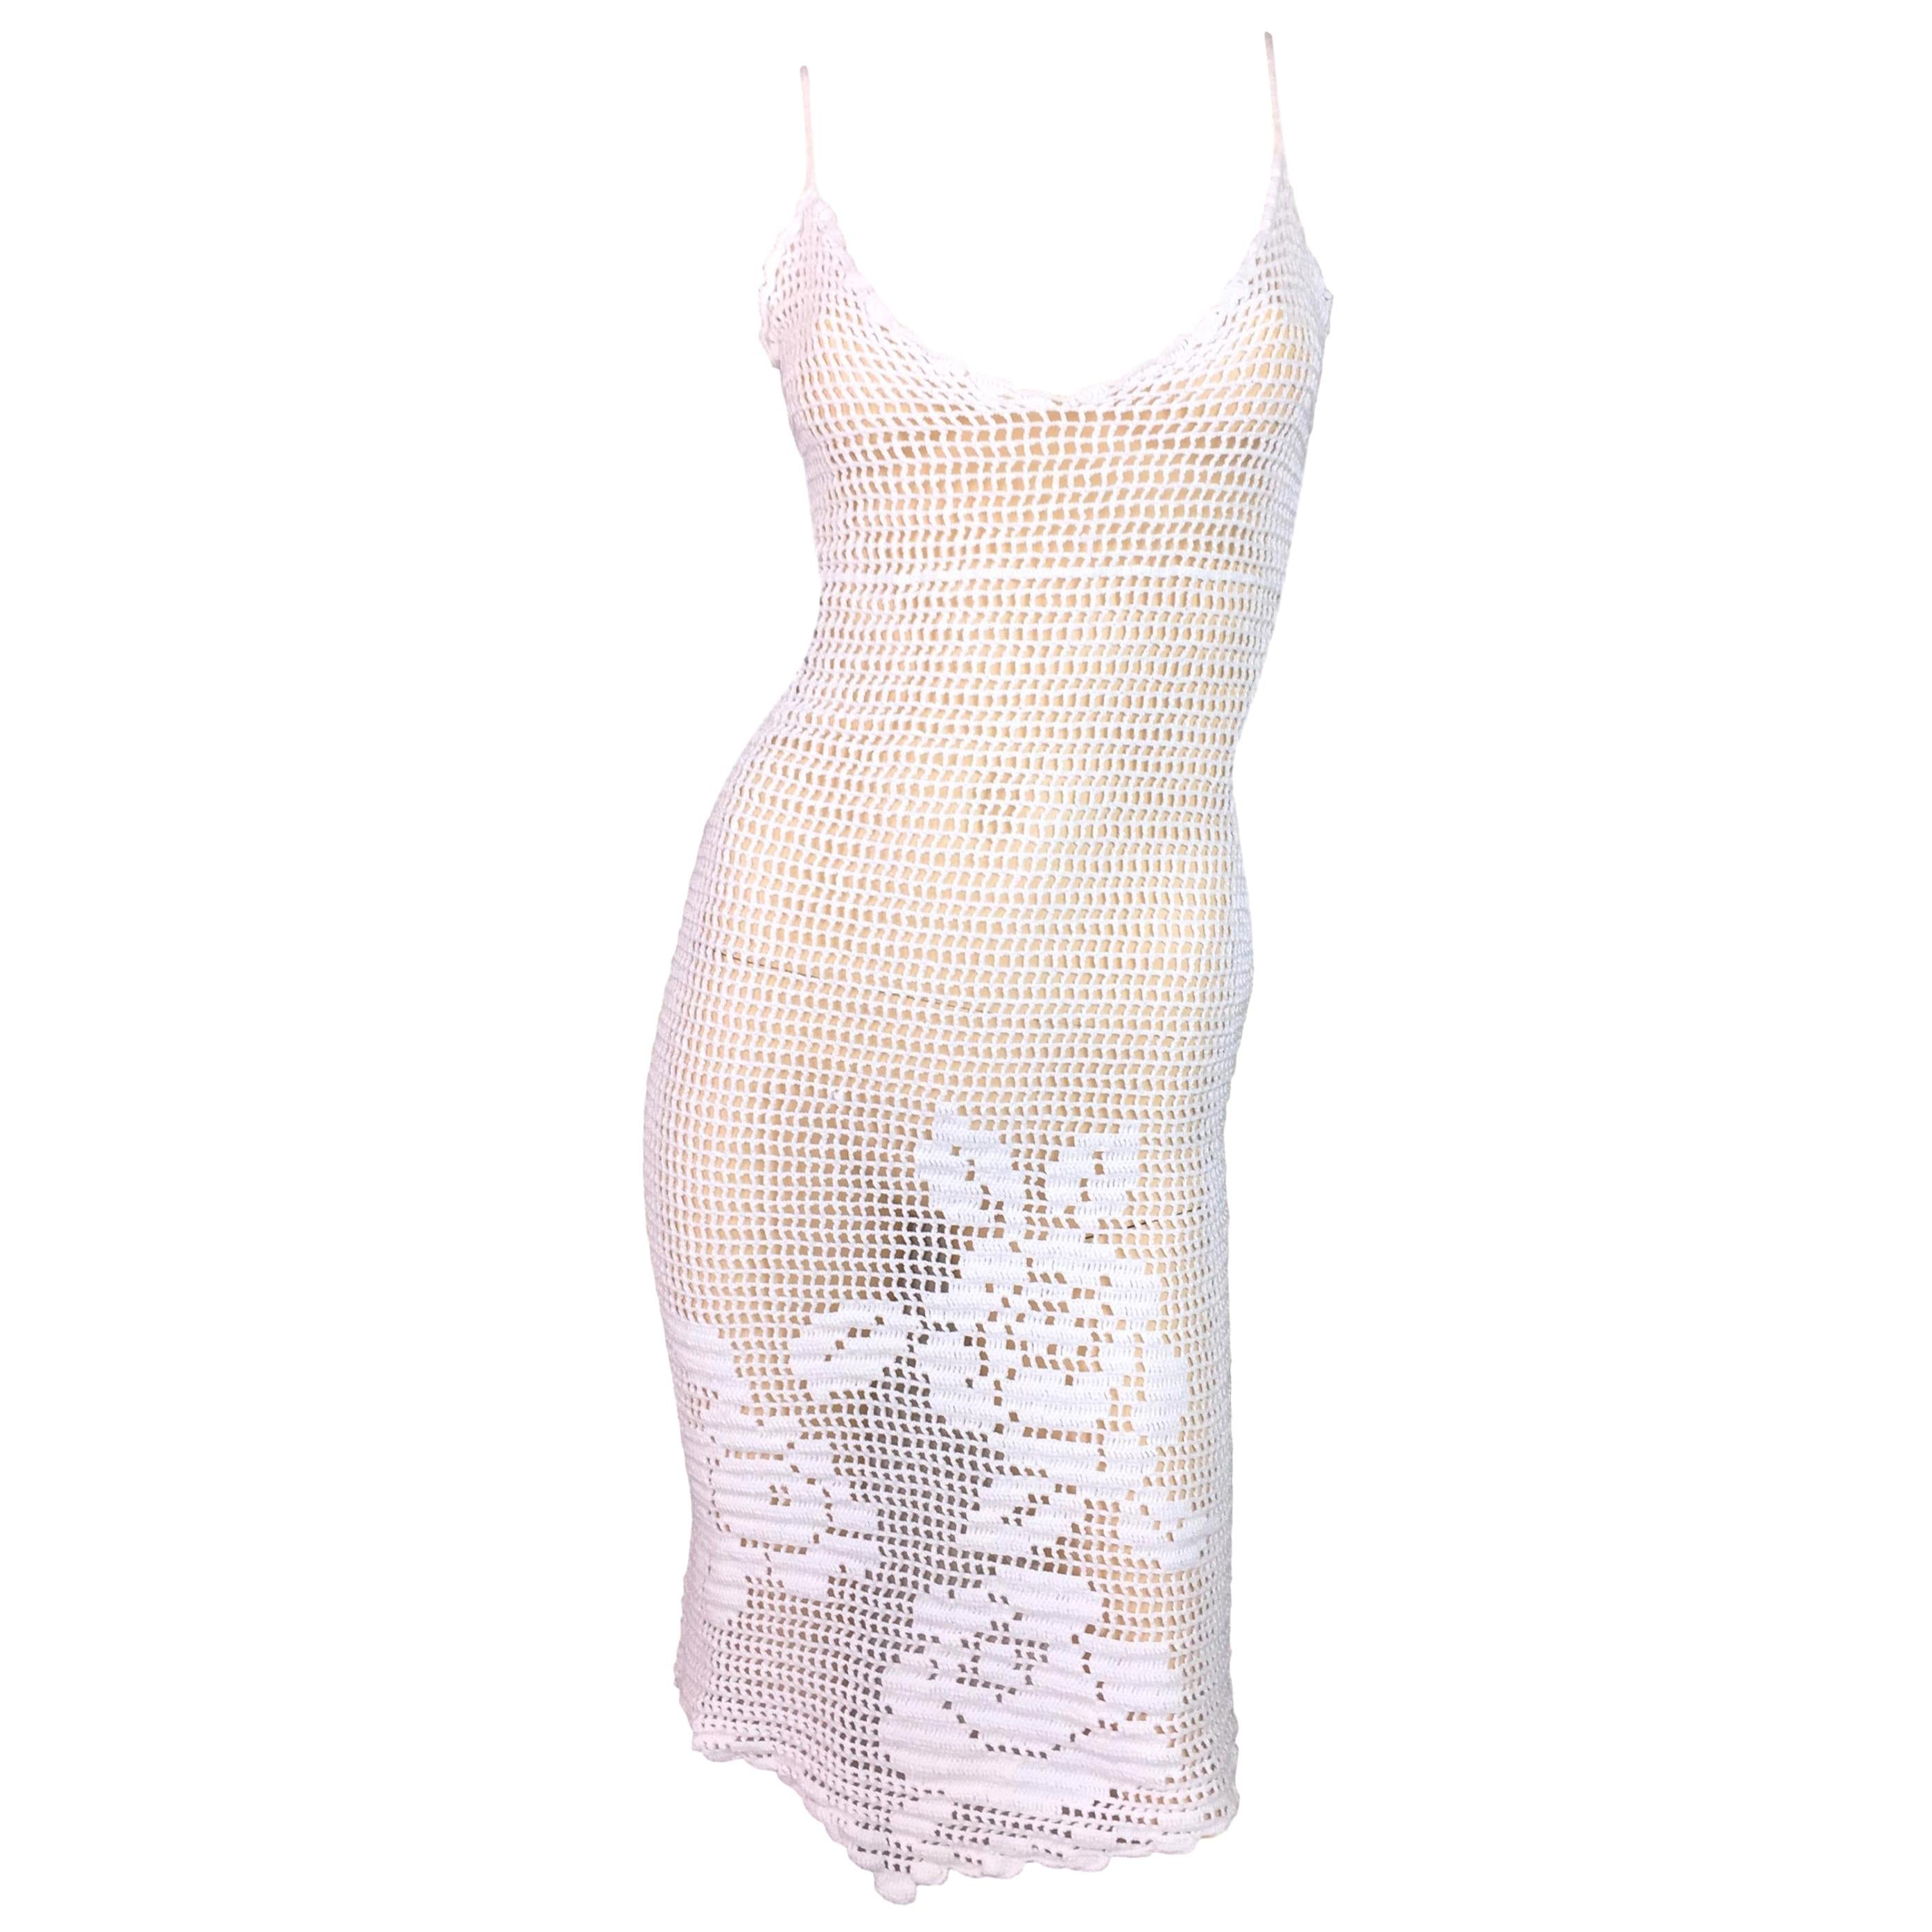 1997 Dolce & Gabbana Sheer White Crochet Floral Plunging Wiggle Dress